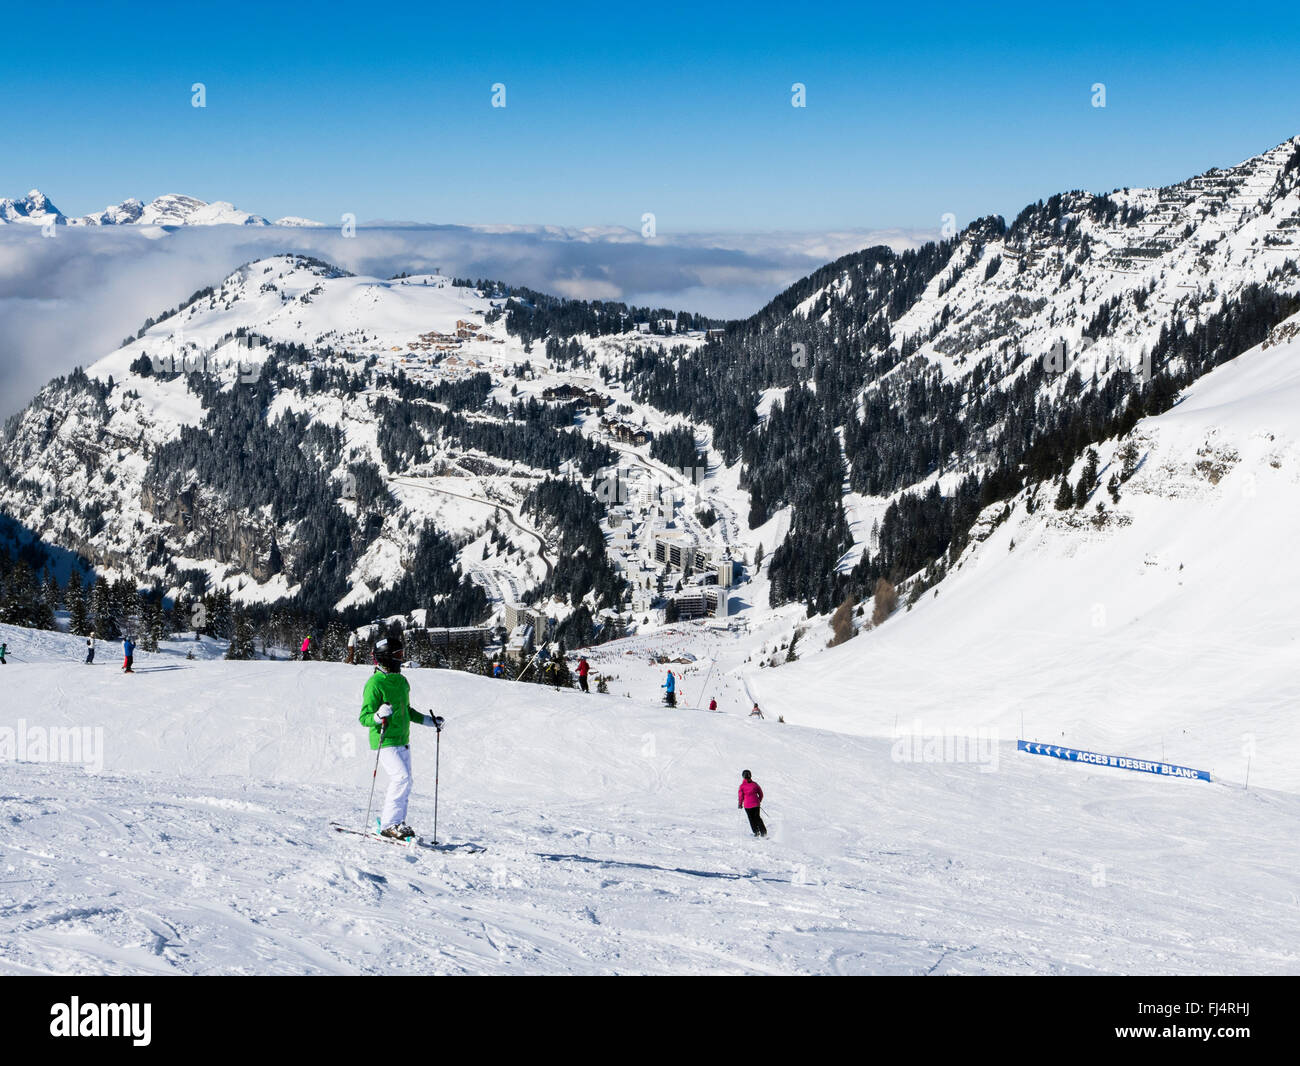 Skiers on snow slopes in Le Grand Massif ski area above Alpine skiing resort of Flaine, Haute Savoie, Rhone-Alpes, - Stock Image